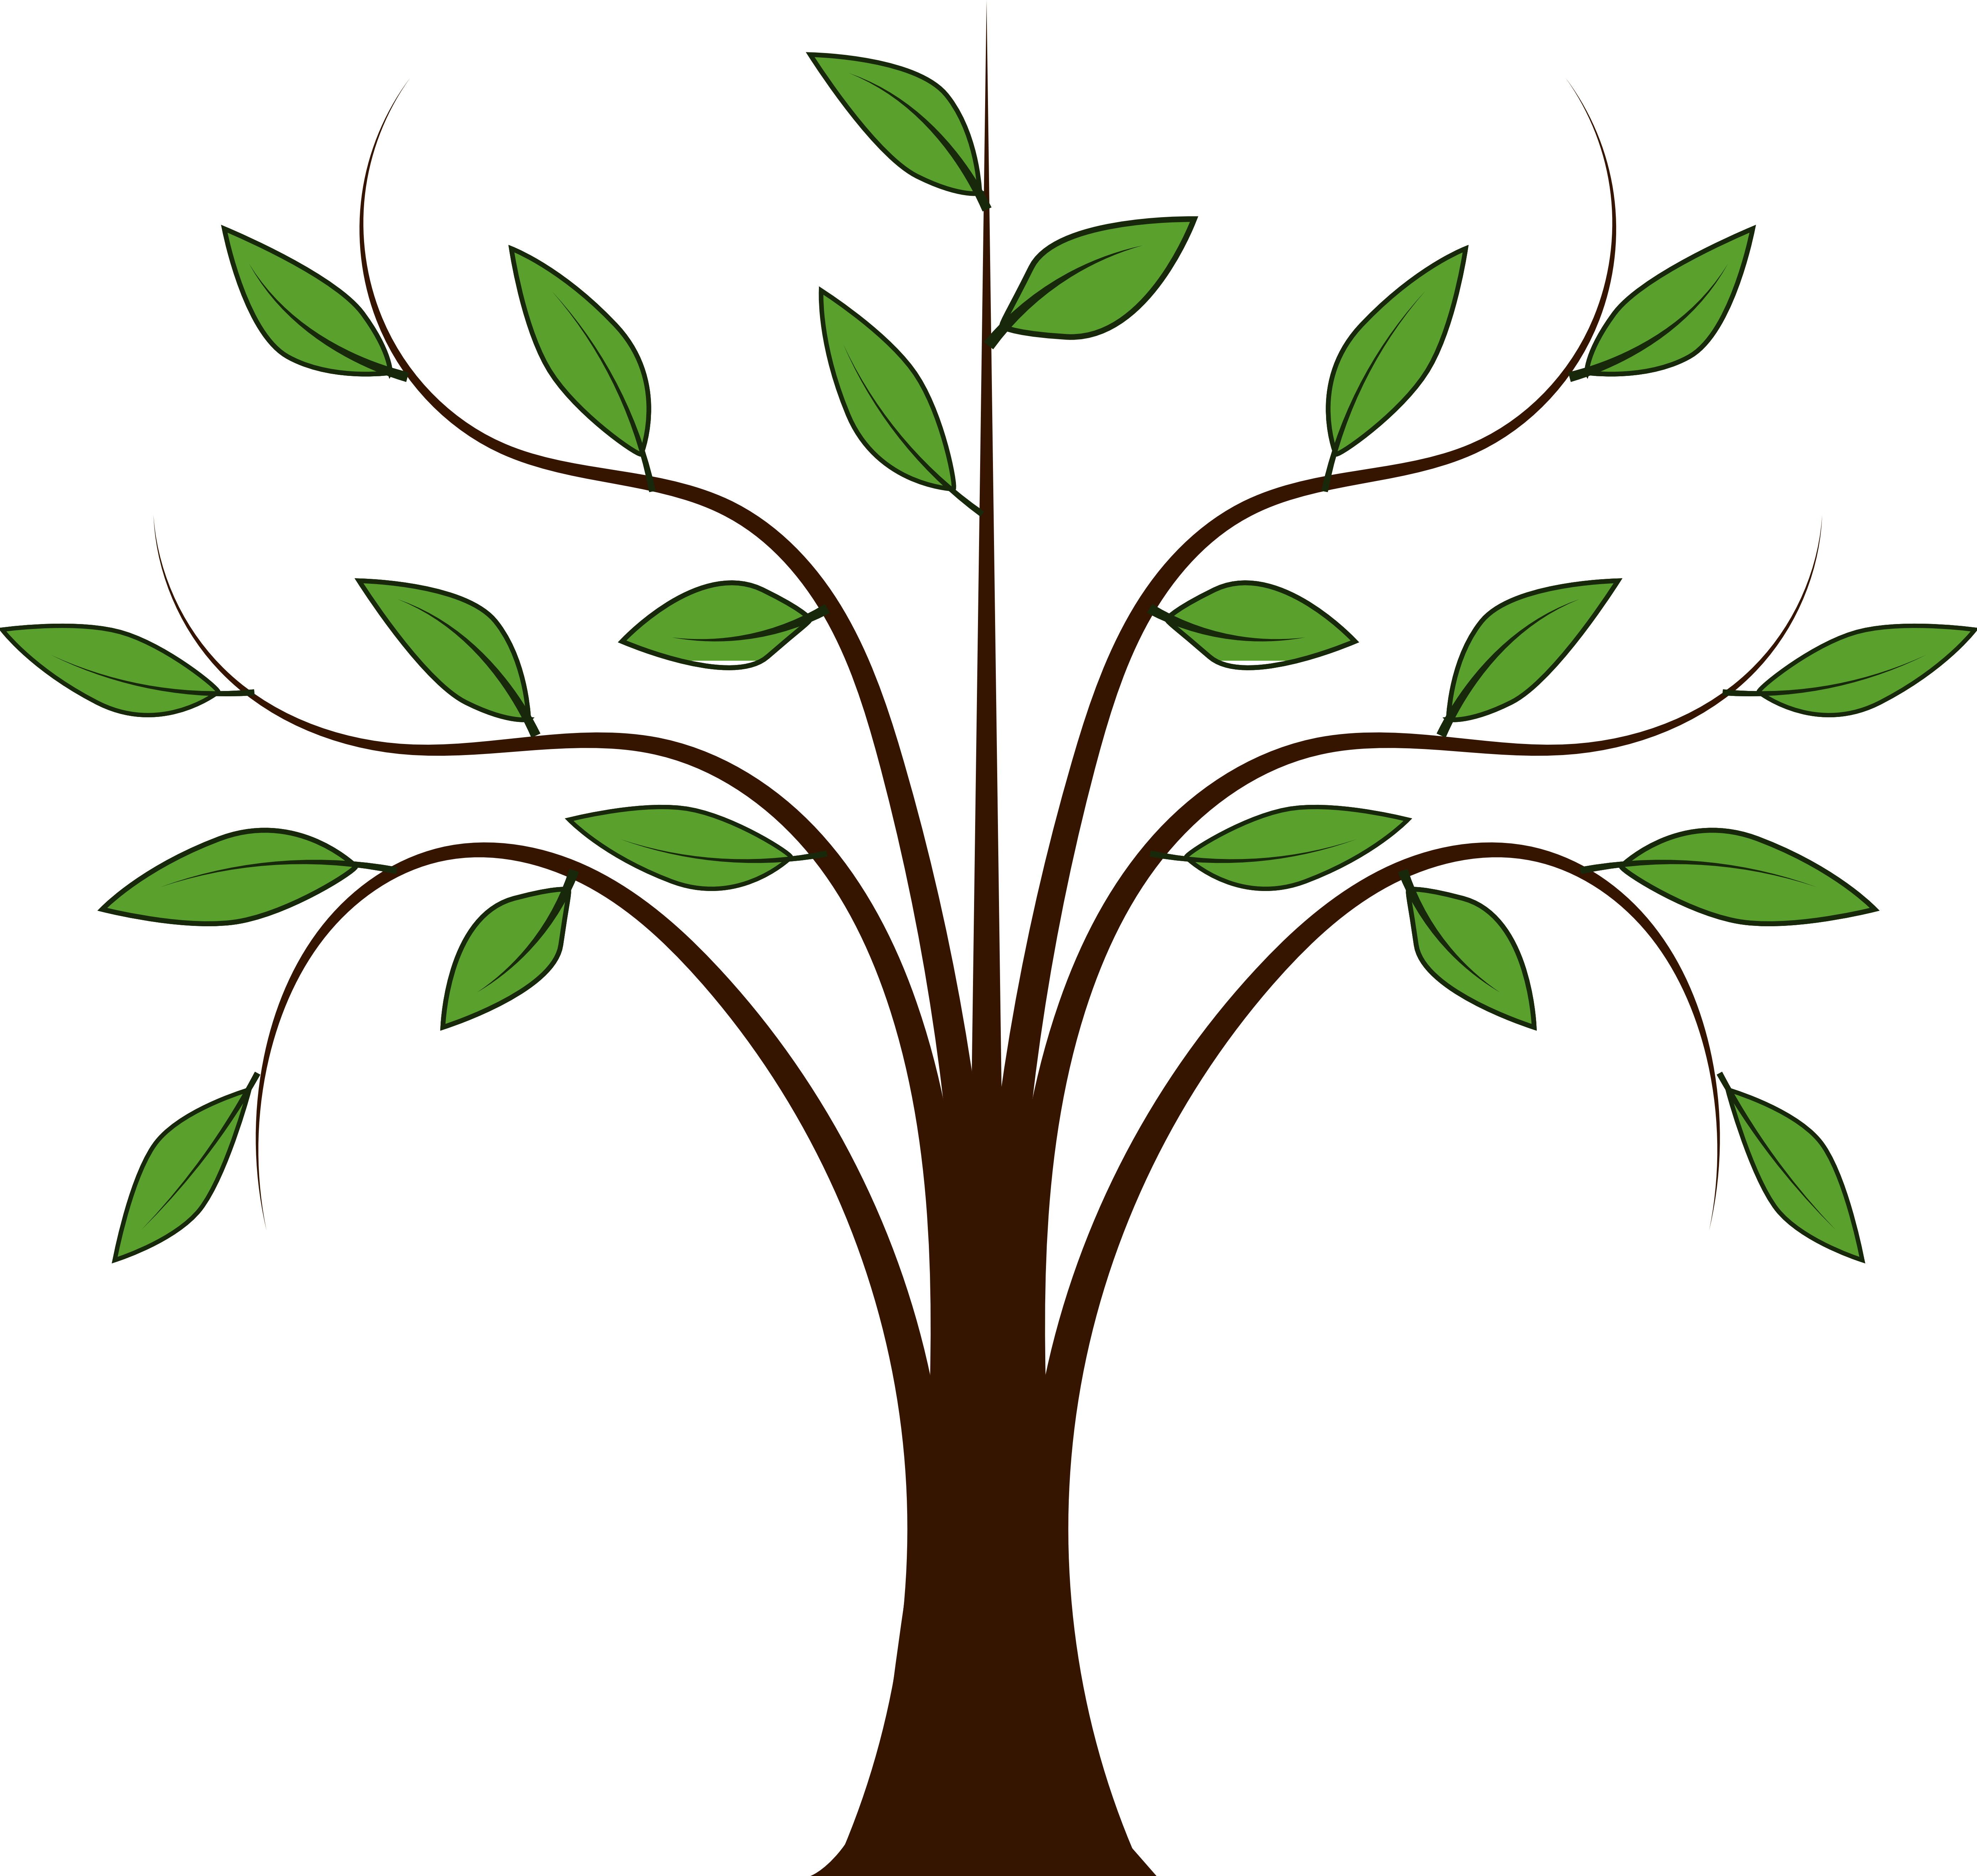 Trees Family Tree Png Free Images 8